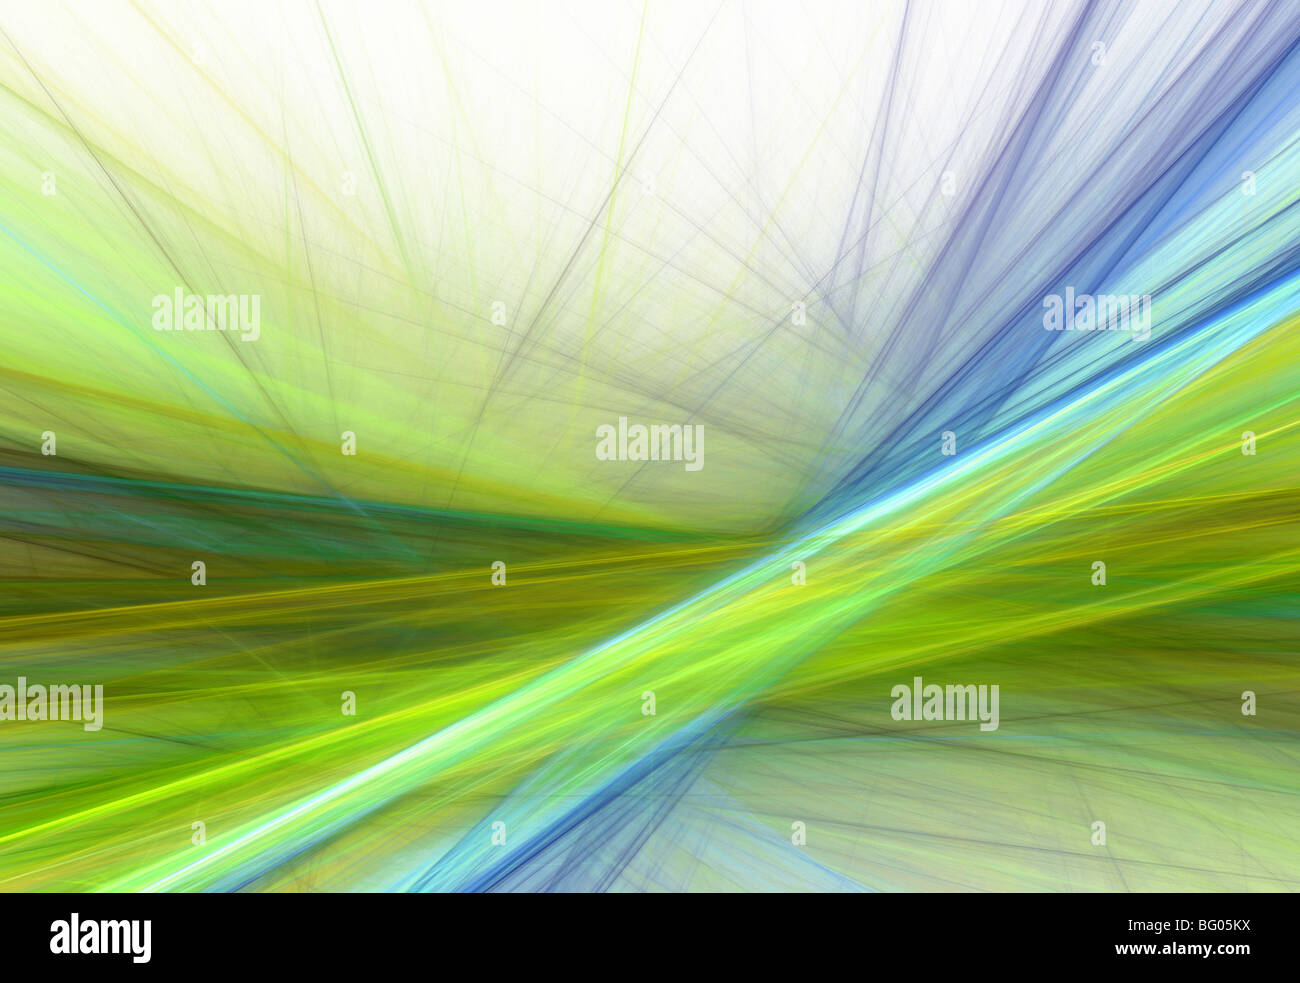 Abstract fractal lines wallpaper illustration - Stock Image